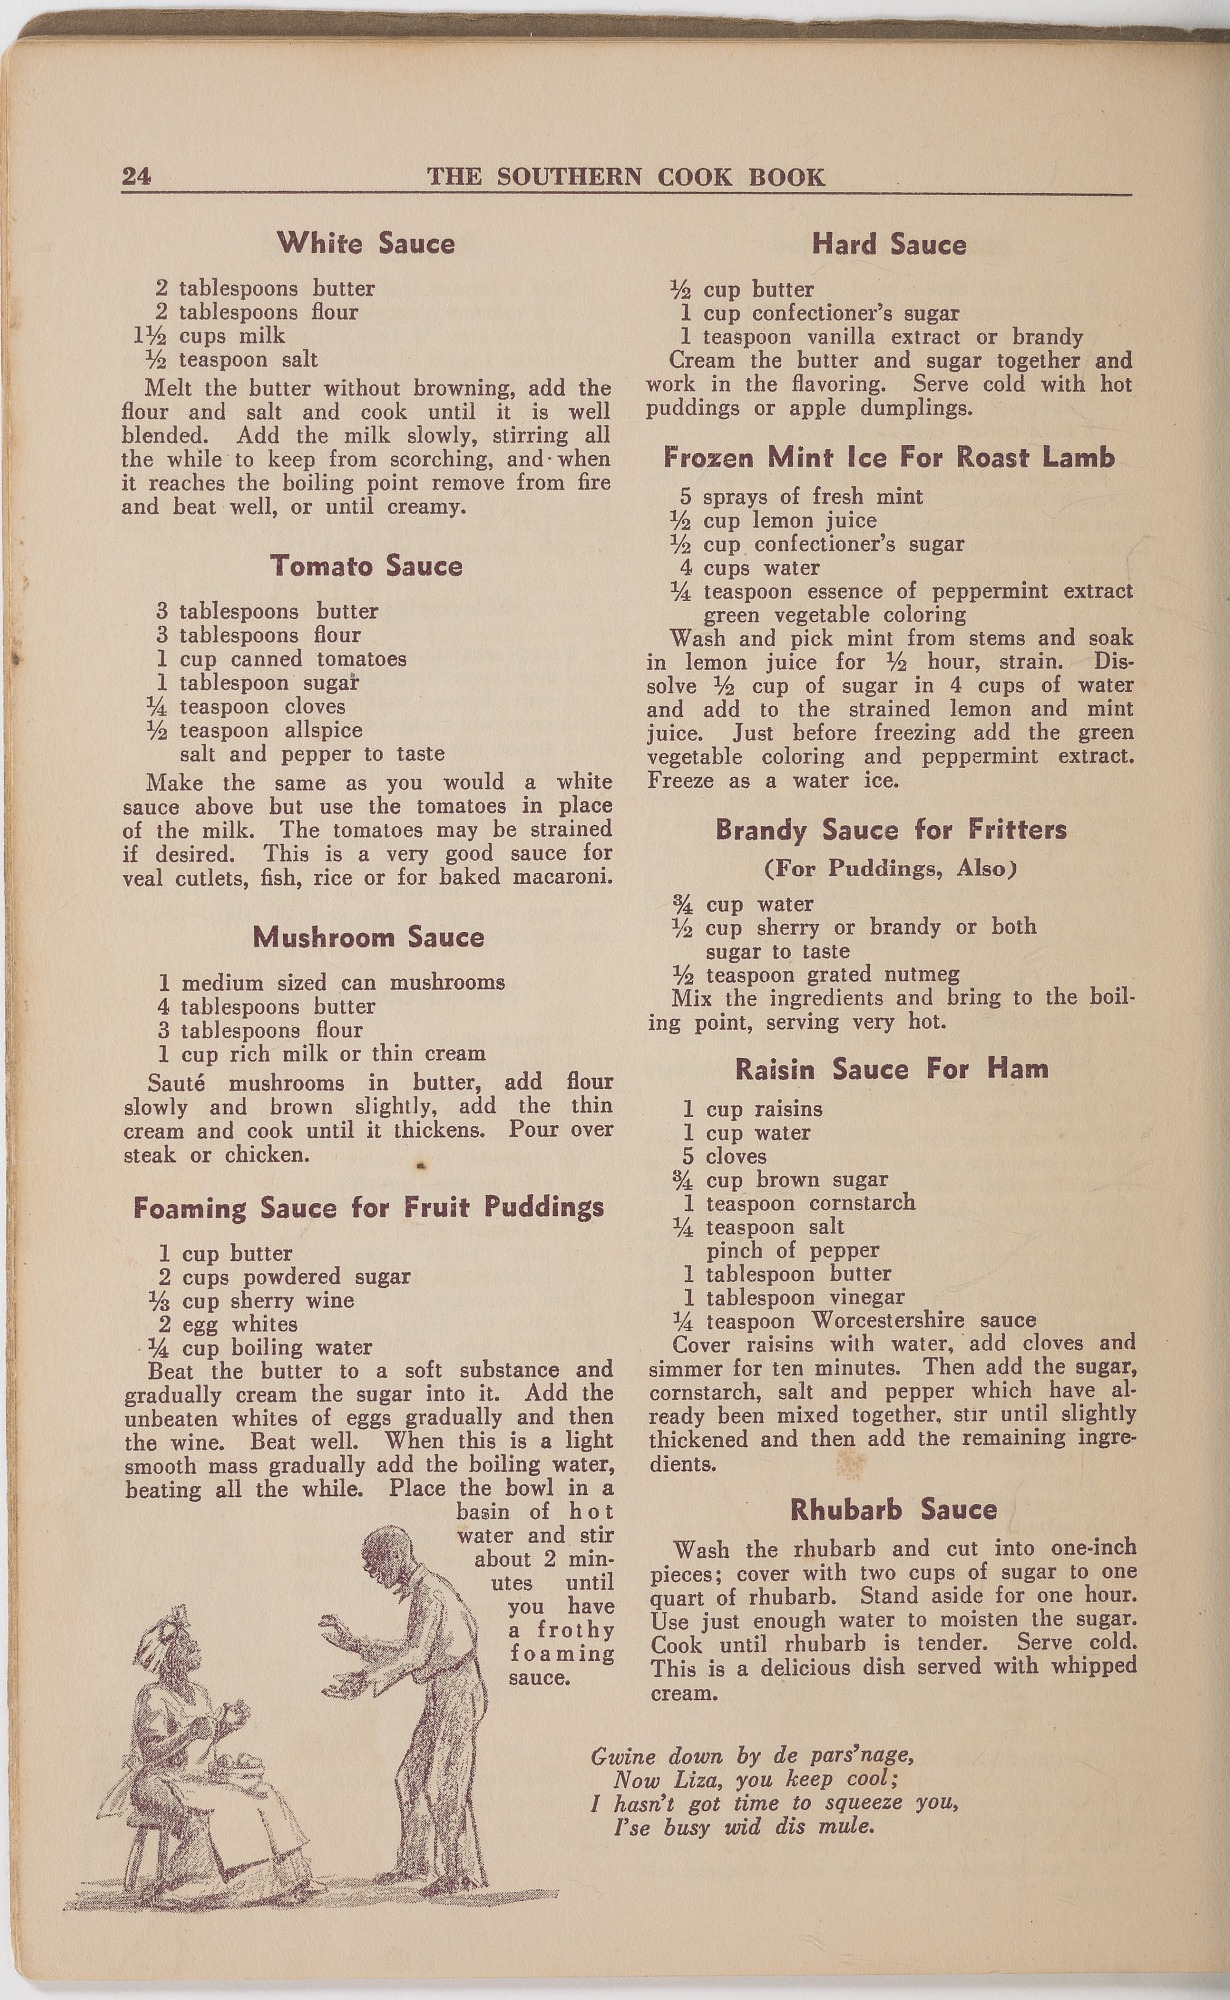 View <I>Southern Cook Book of Fine Old Dixie Recipes</I> digital asset number 26